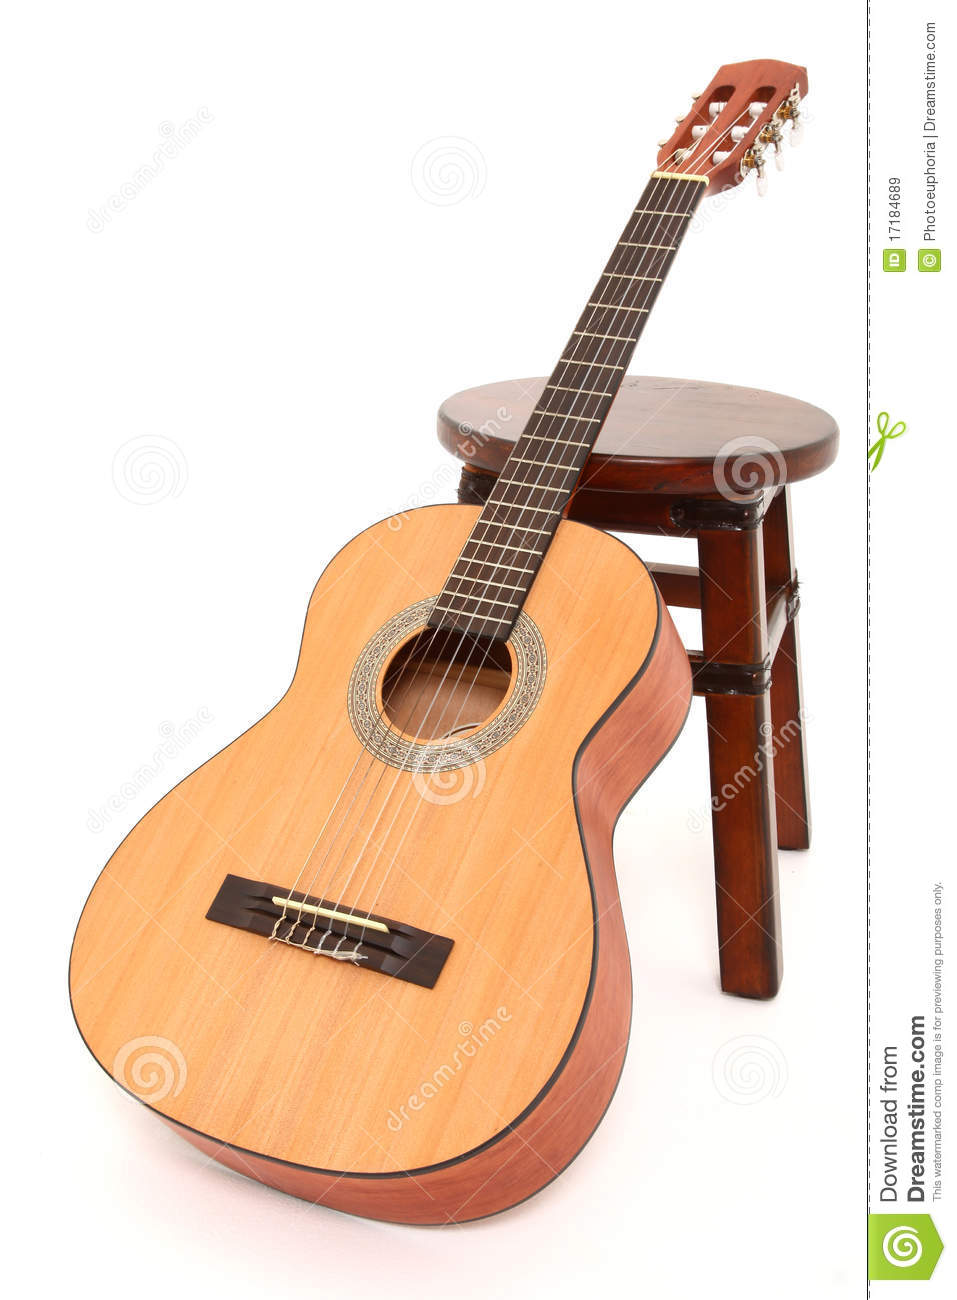 Guitare Acoustique D'enfant Image stock - Image du string ...